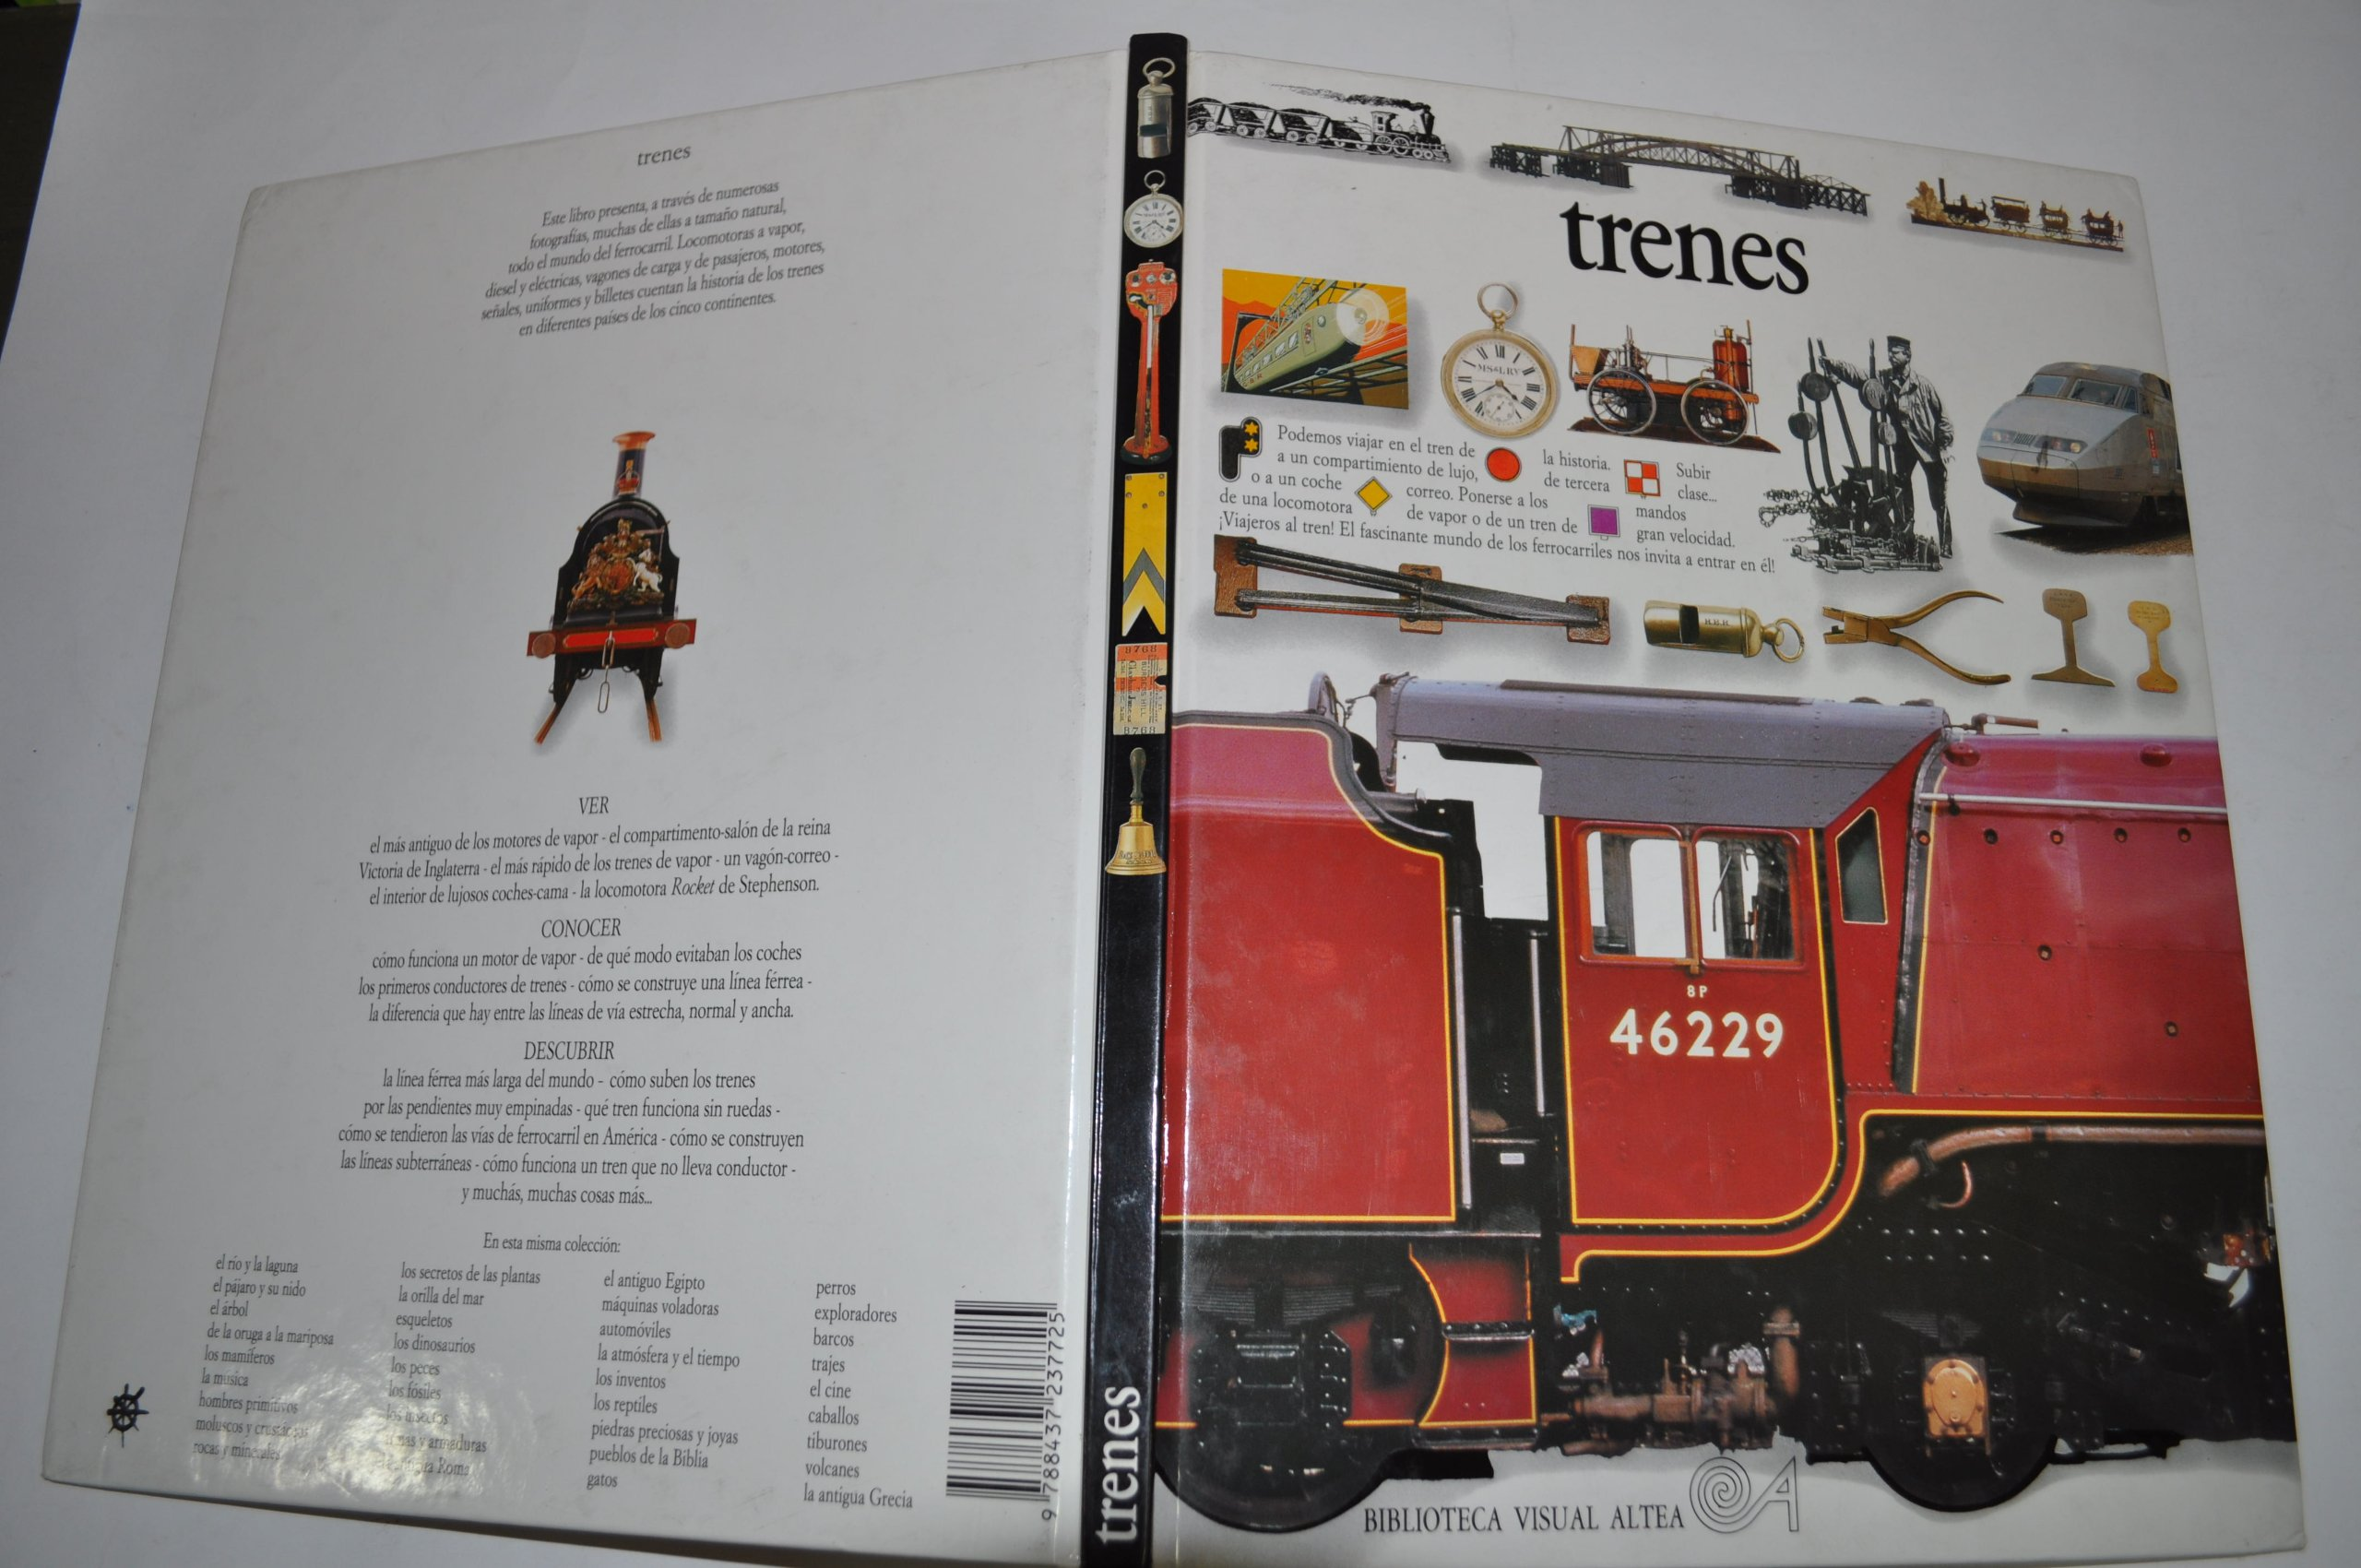 Trenes/Trains (Eyewitness Series in Spanish) (Spanish Edition) (Spanish) Hardcover – December 1, 1995